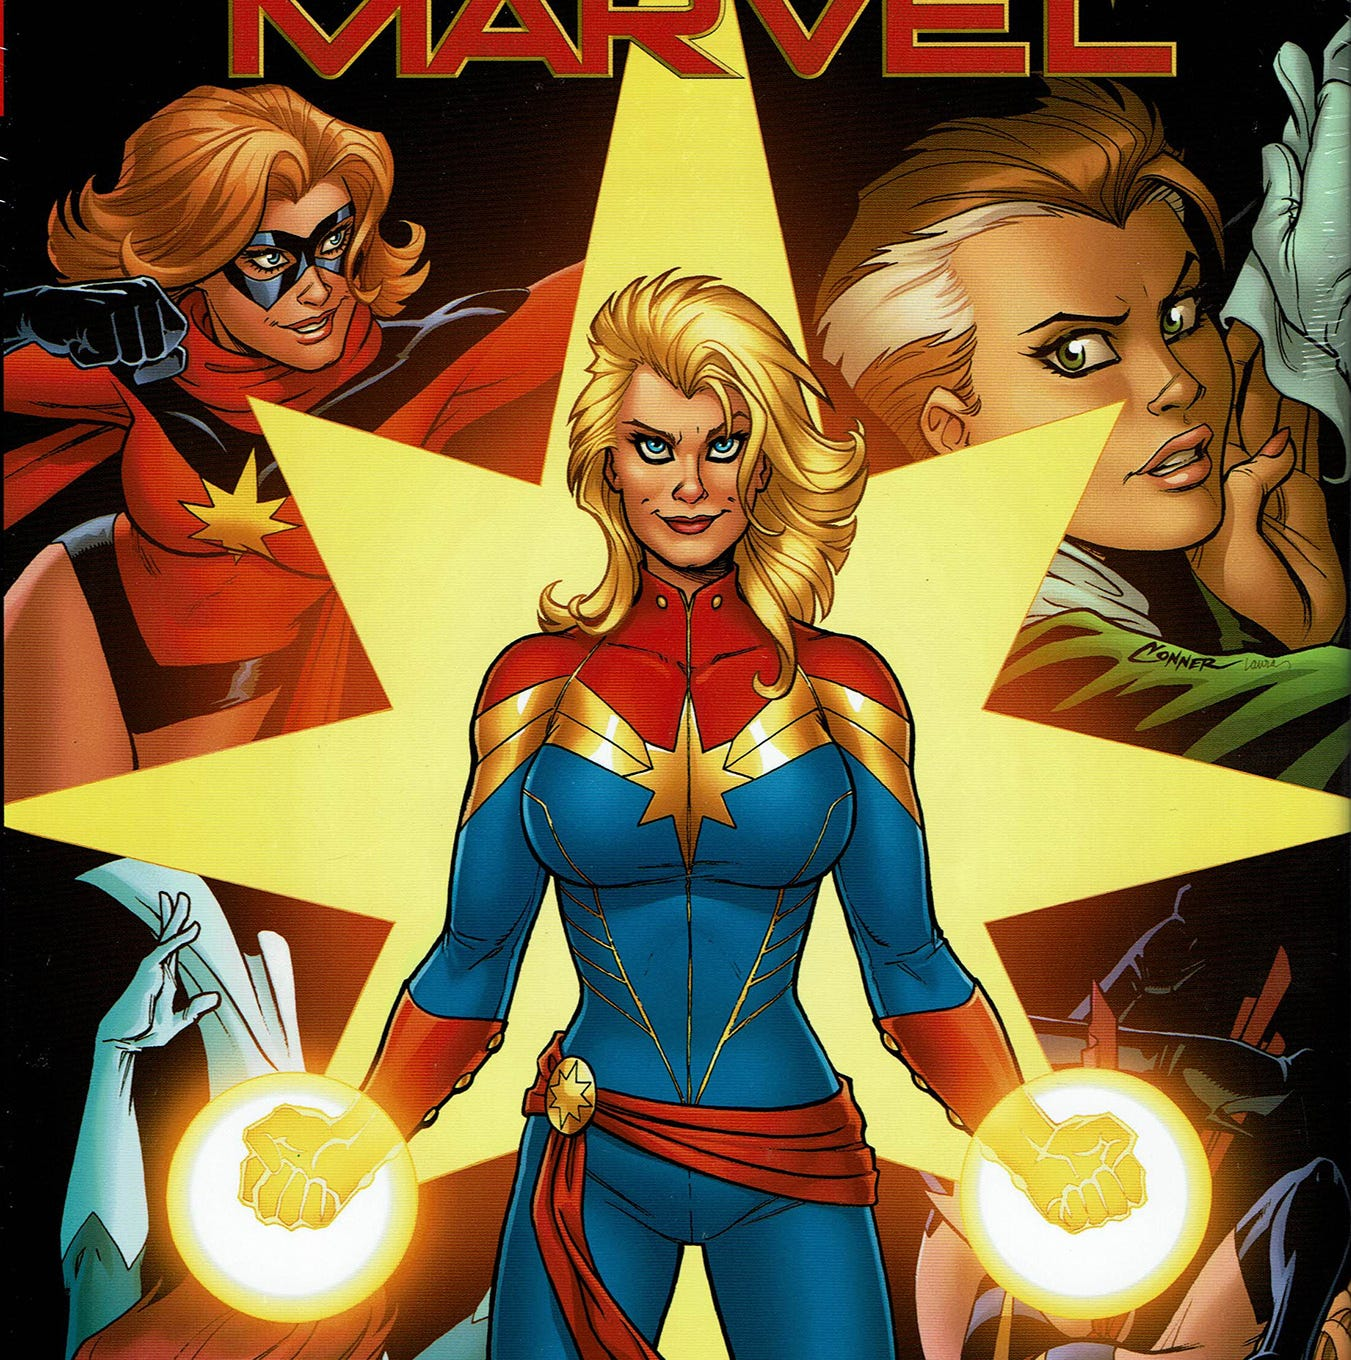 Captain Comics: The many iterations of Captain Marvel